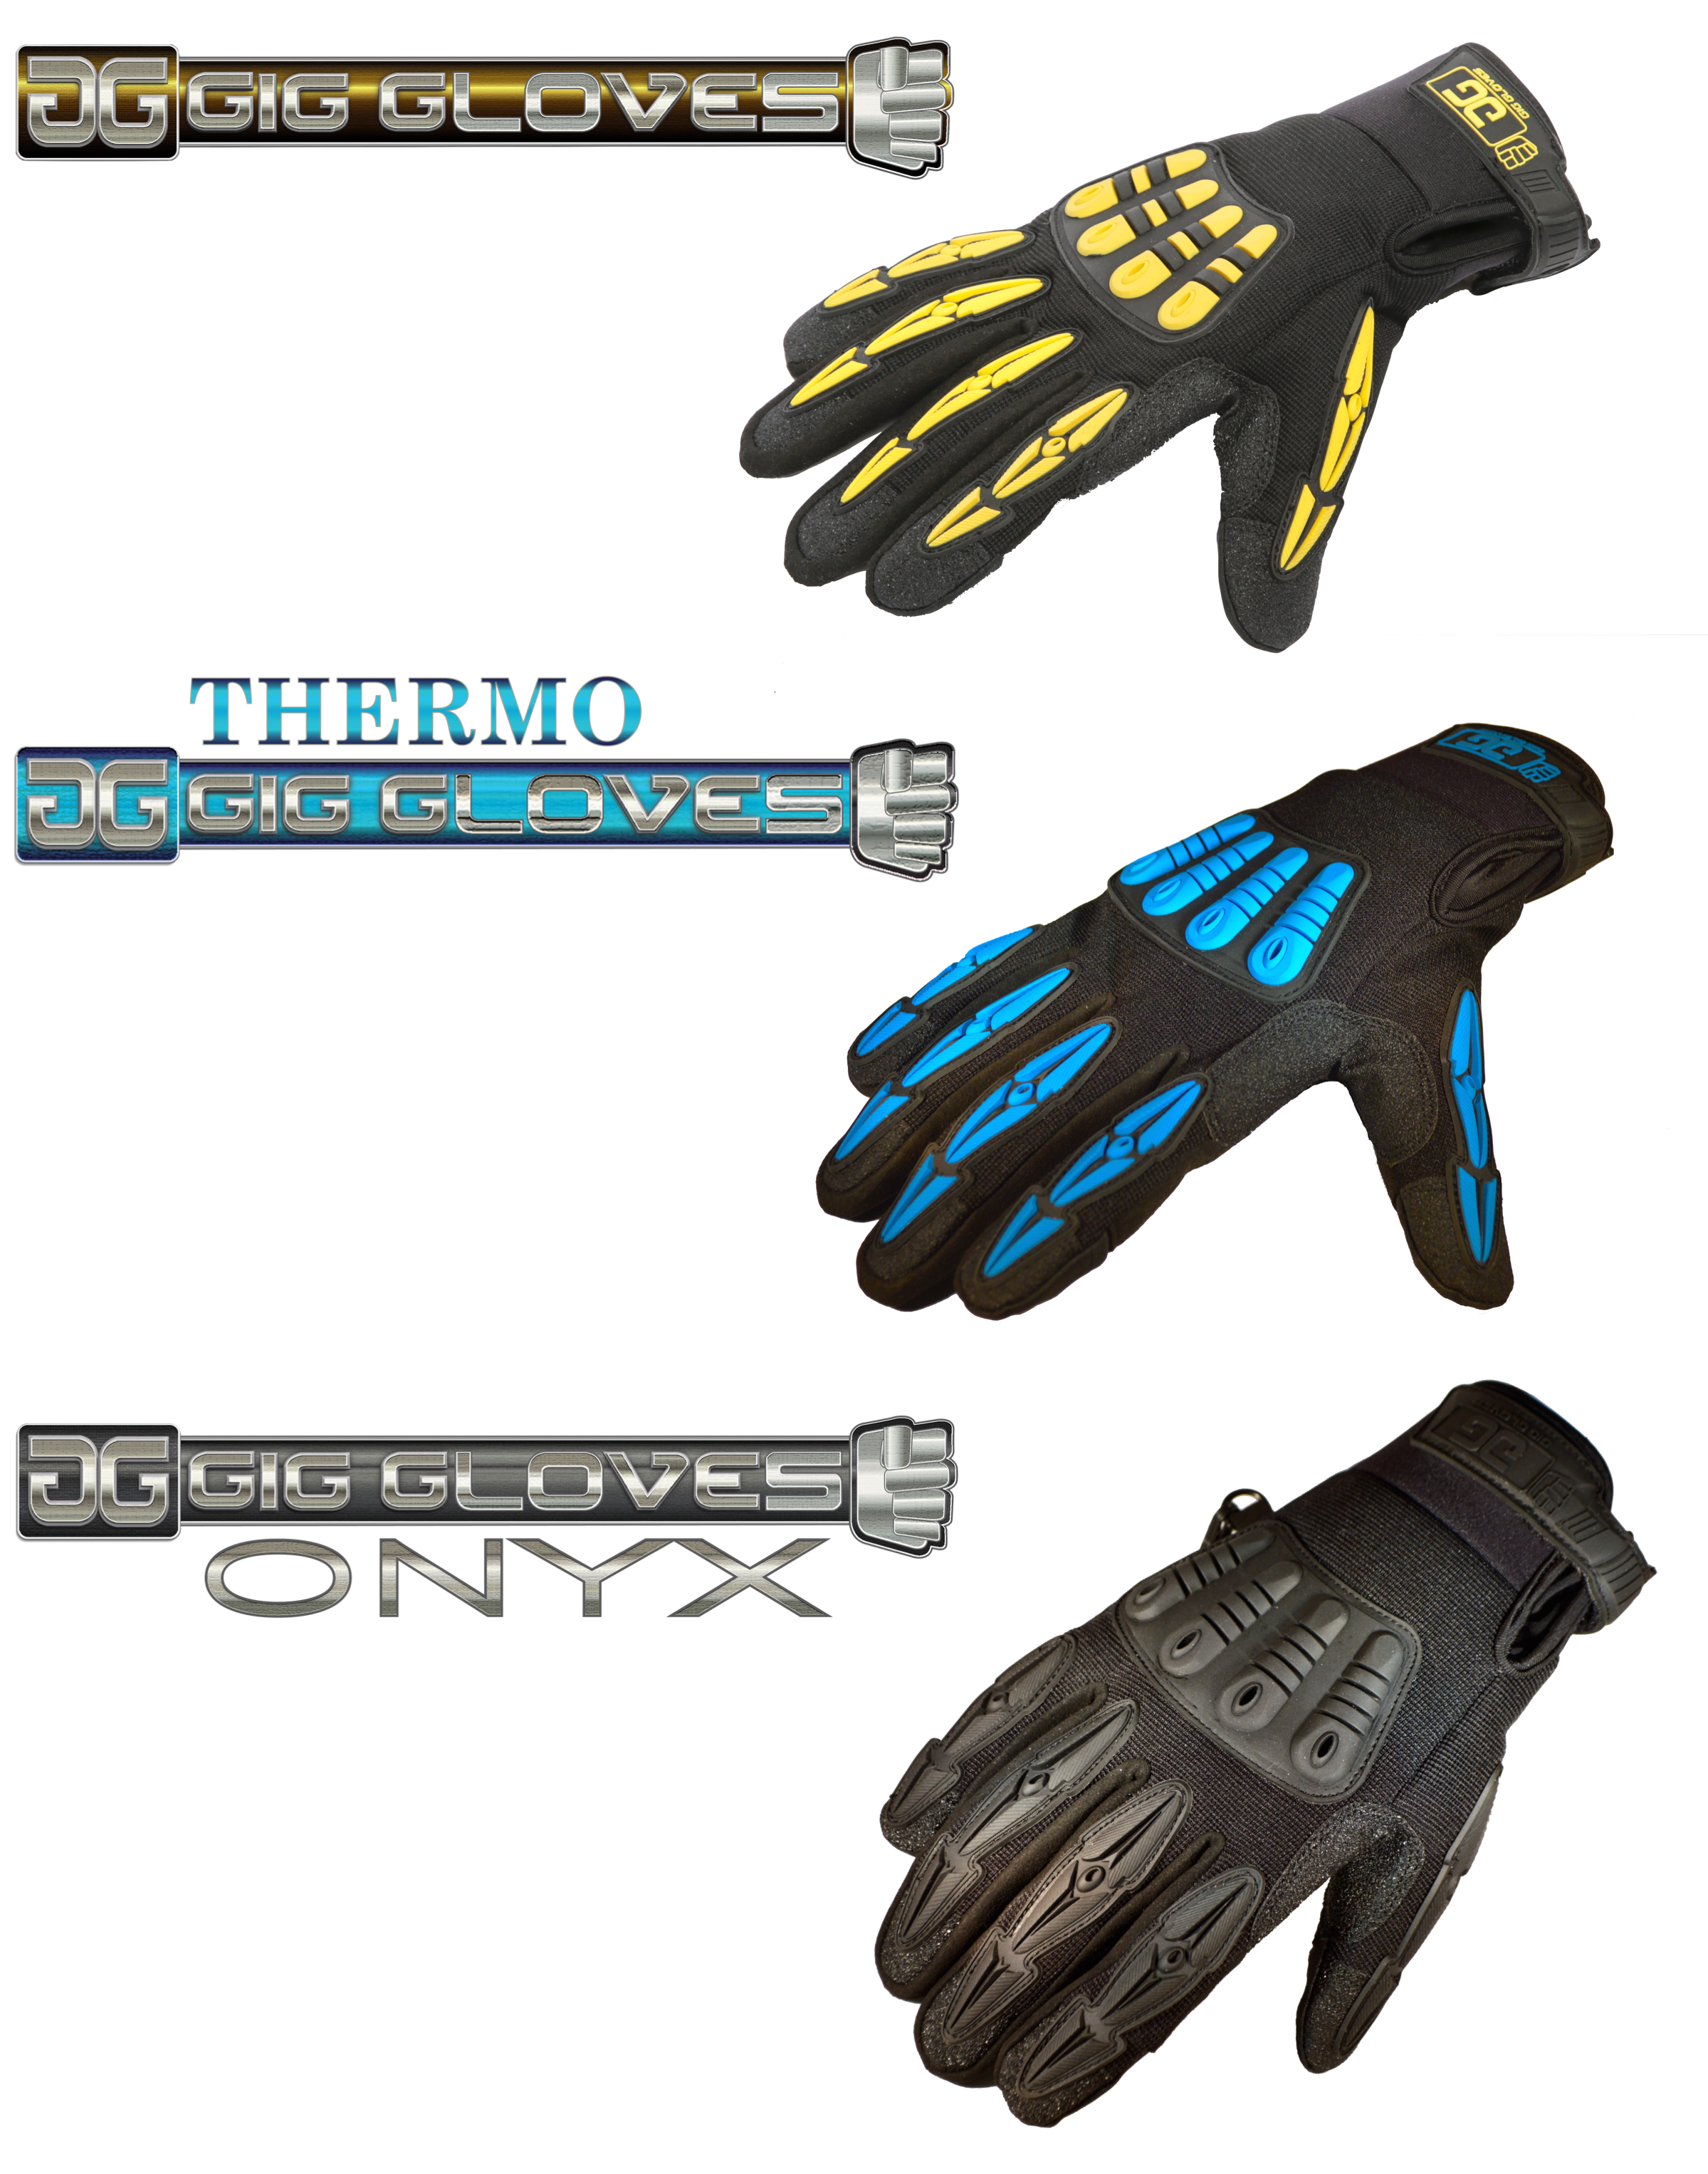 The Gig Glove family